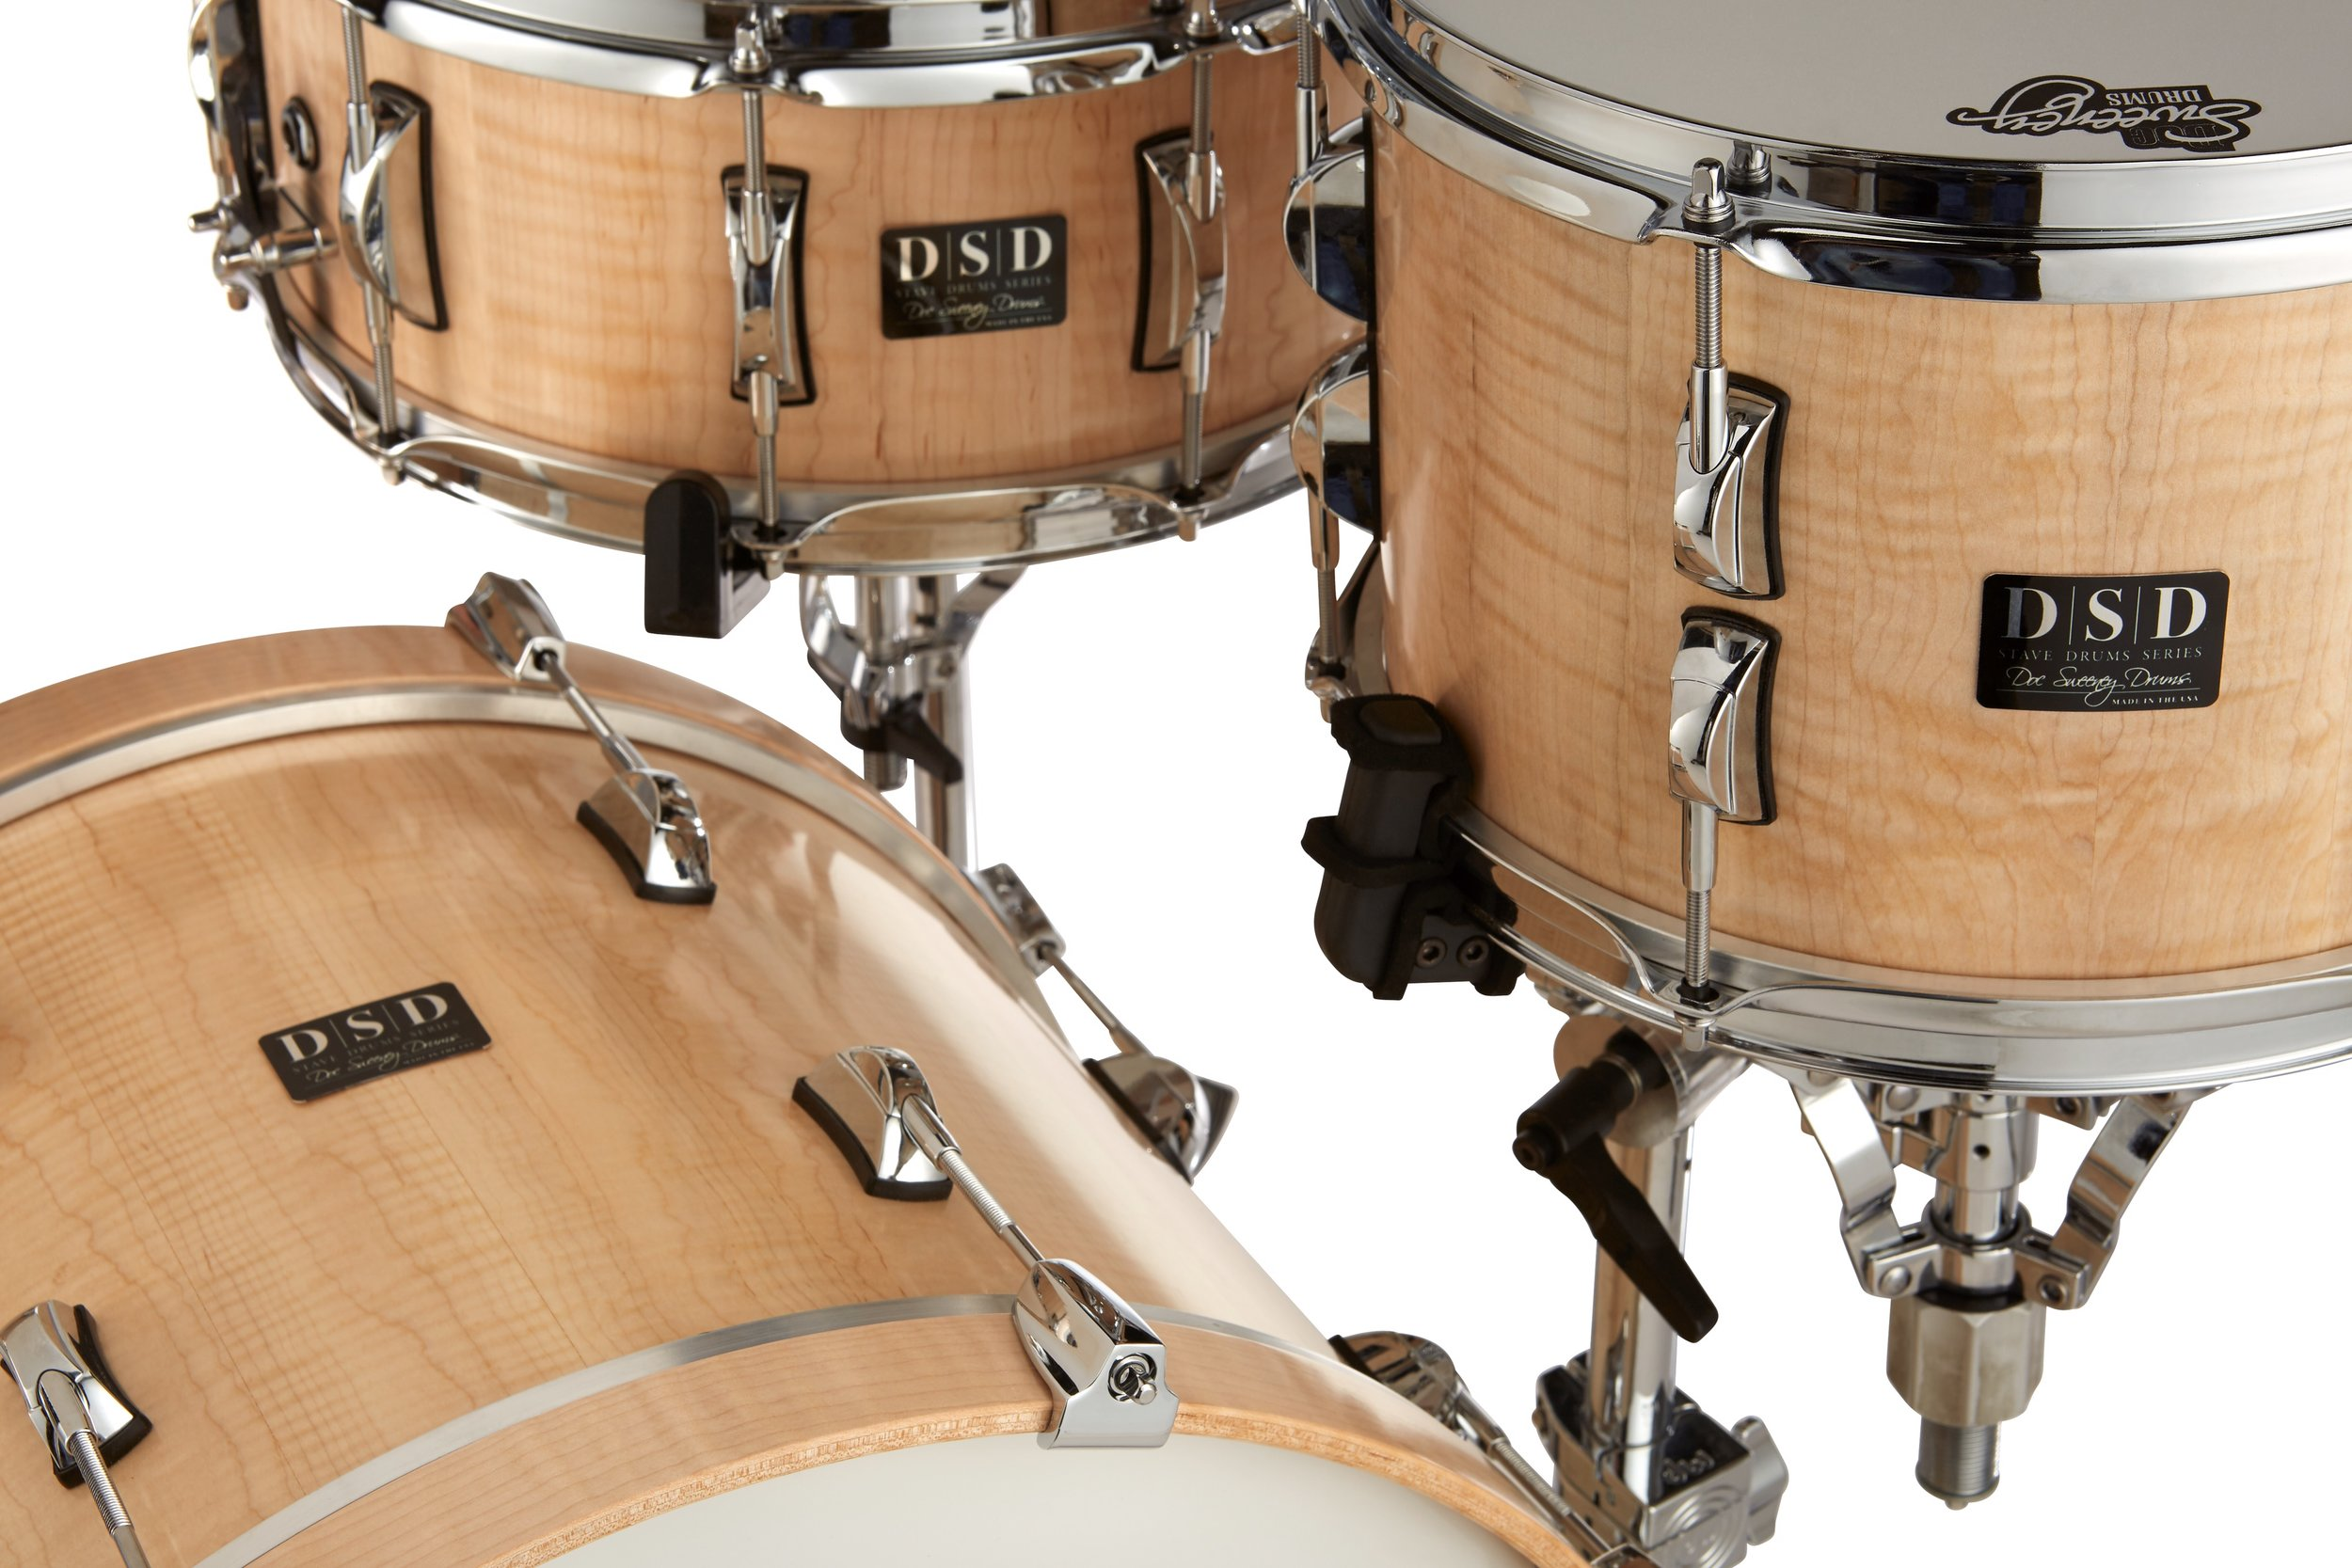 Performance - These drums produce a classic and pure sound that is home in any musical situation. Snare shells pop, yet are sensitive to light sticking, and the toms and bass produce tight full tones. These kits are the choice for players looking for a more focused sound with increased projection.